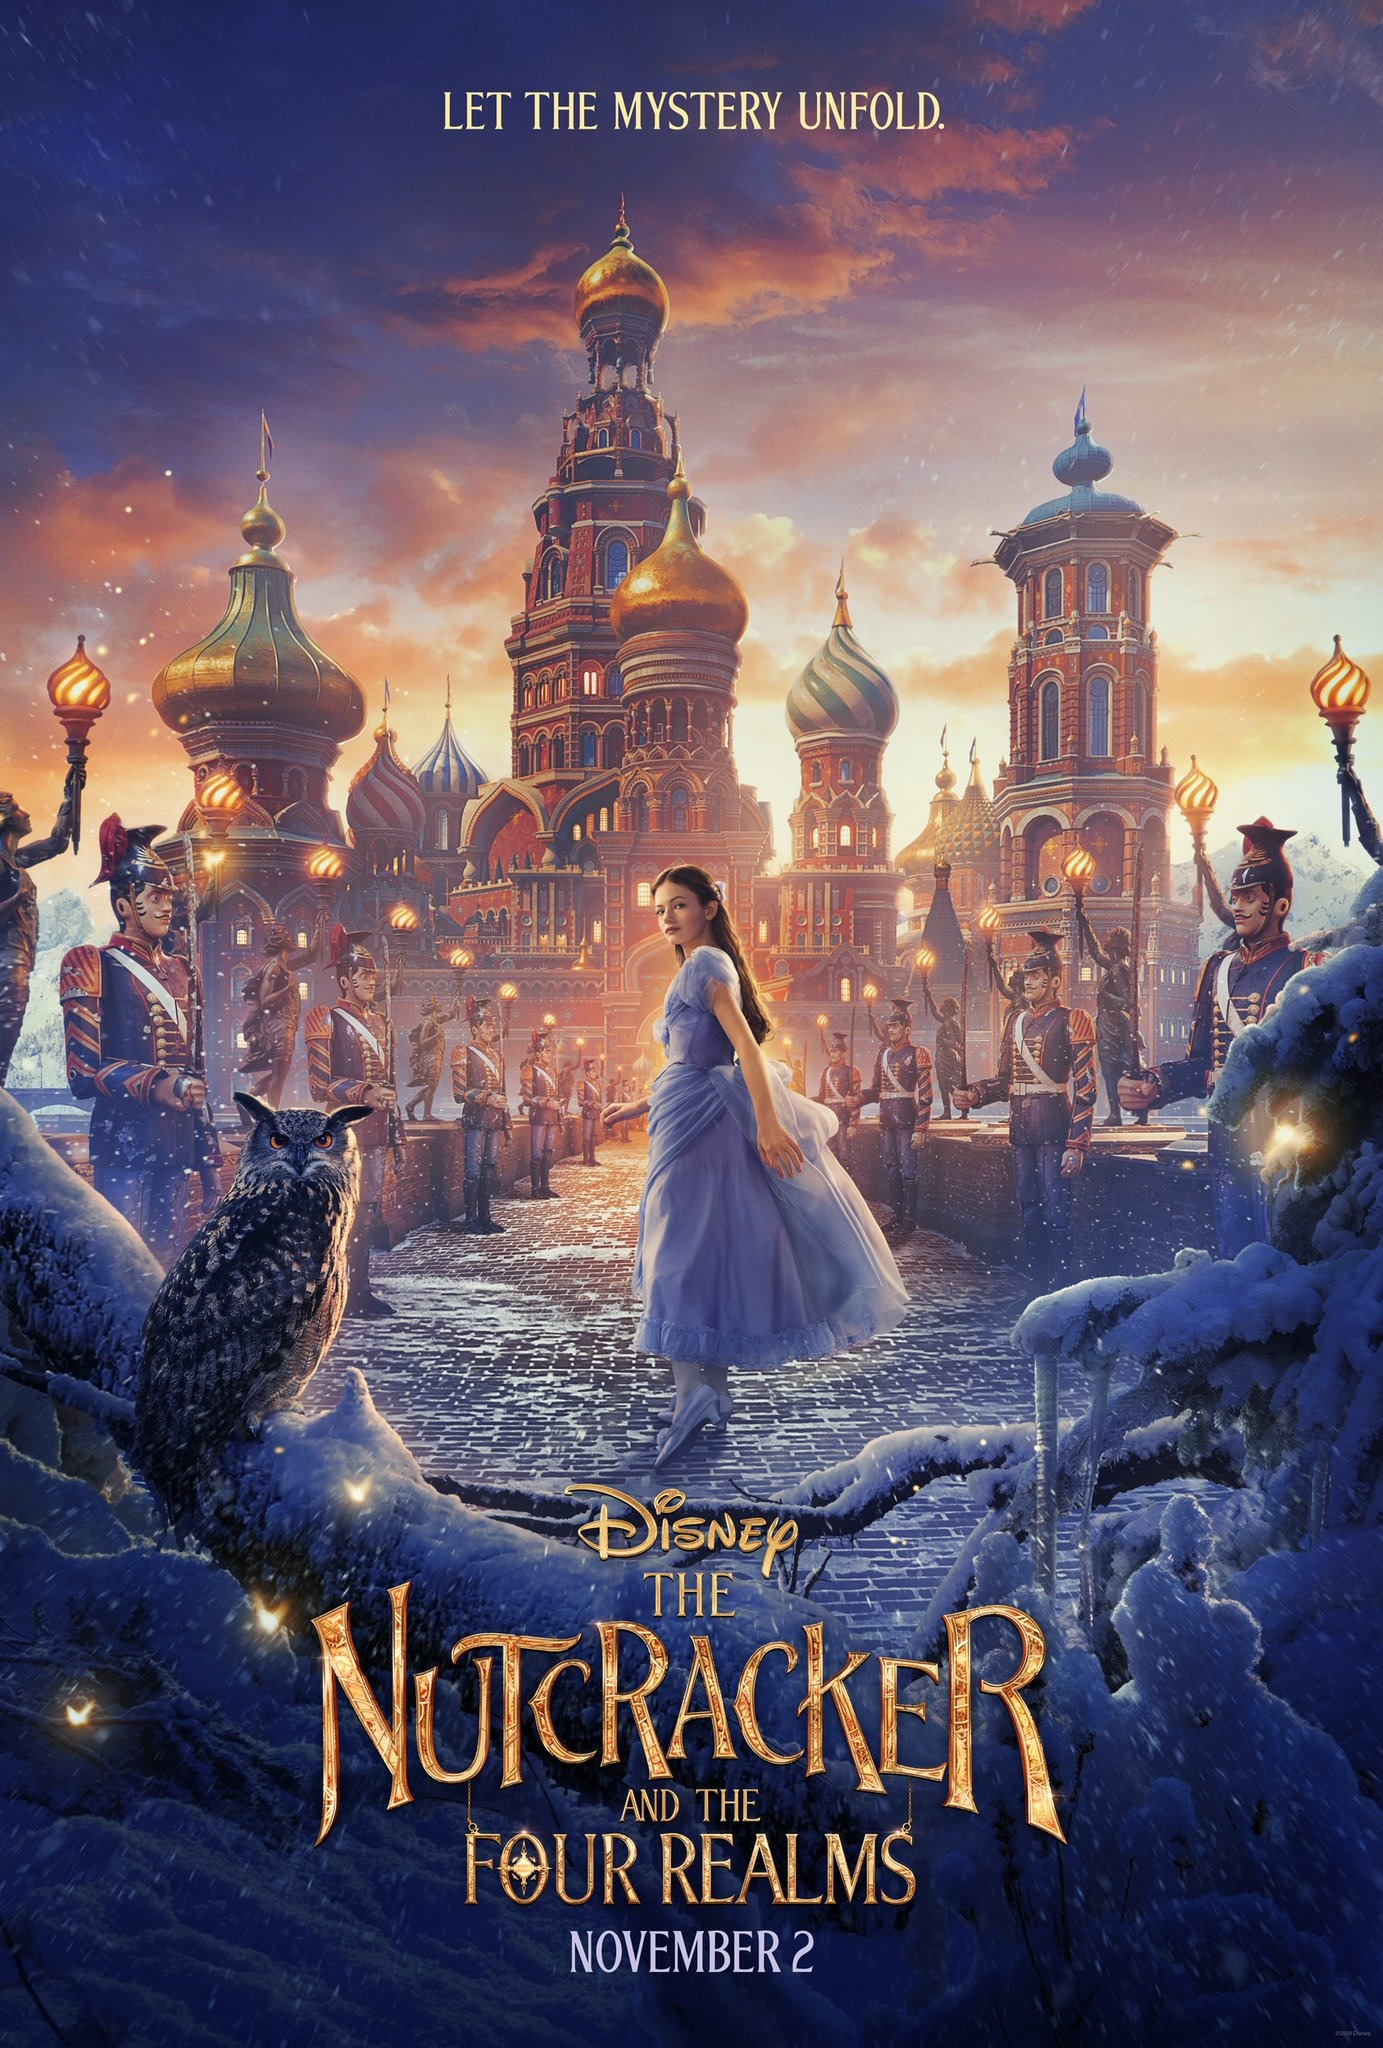 The Nutcracker And The Four Realms film review: full of colour, wonder and surprises